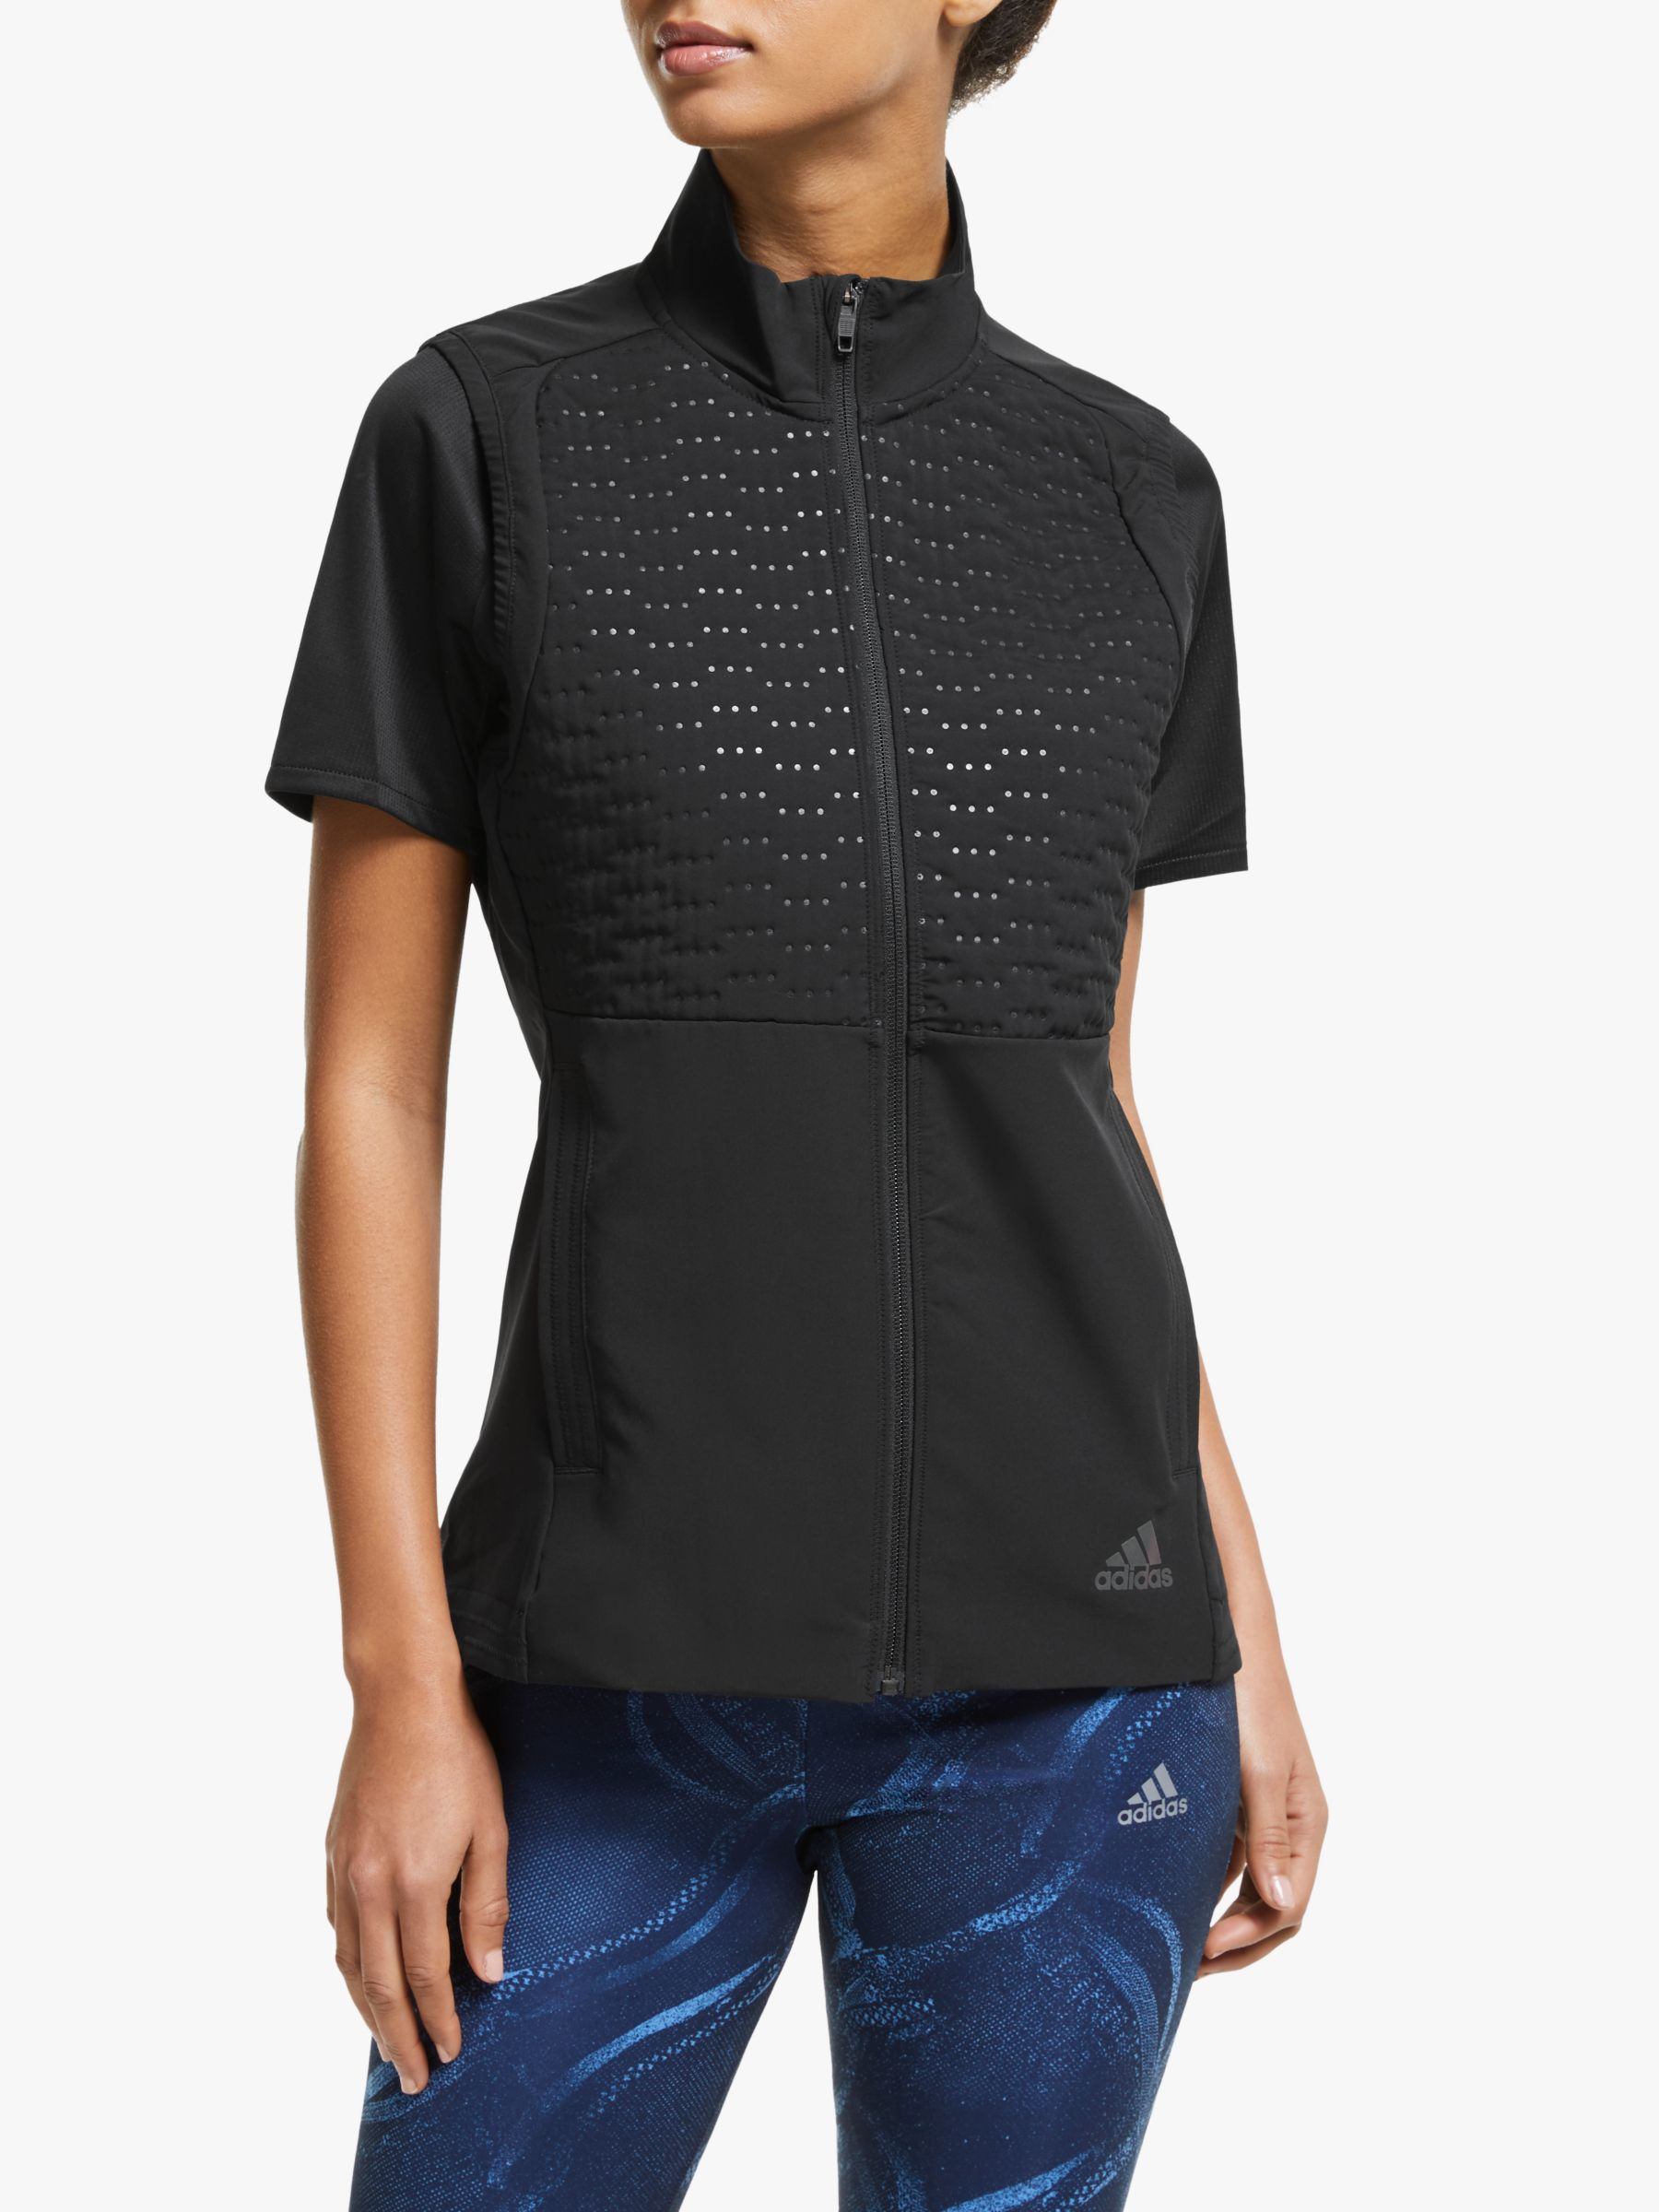 Adidas adidas Rise Up N Run Guard Running Gilet, Black